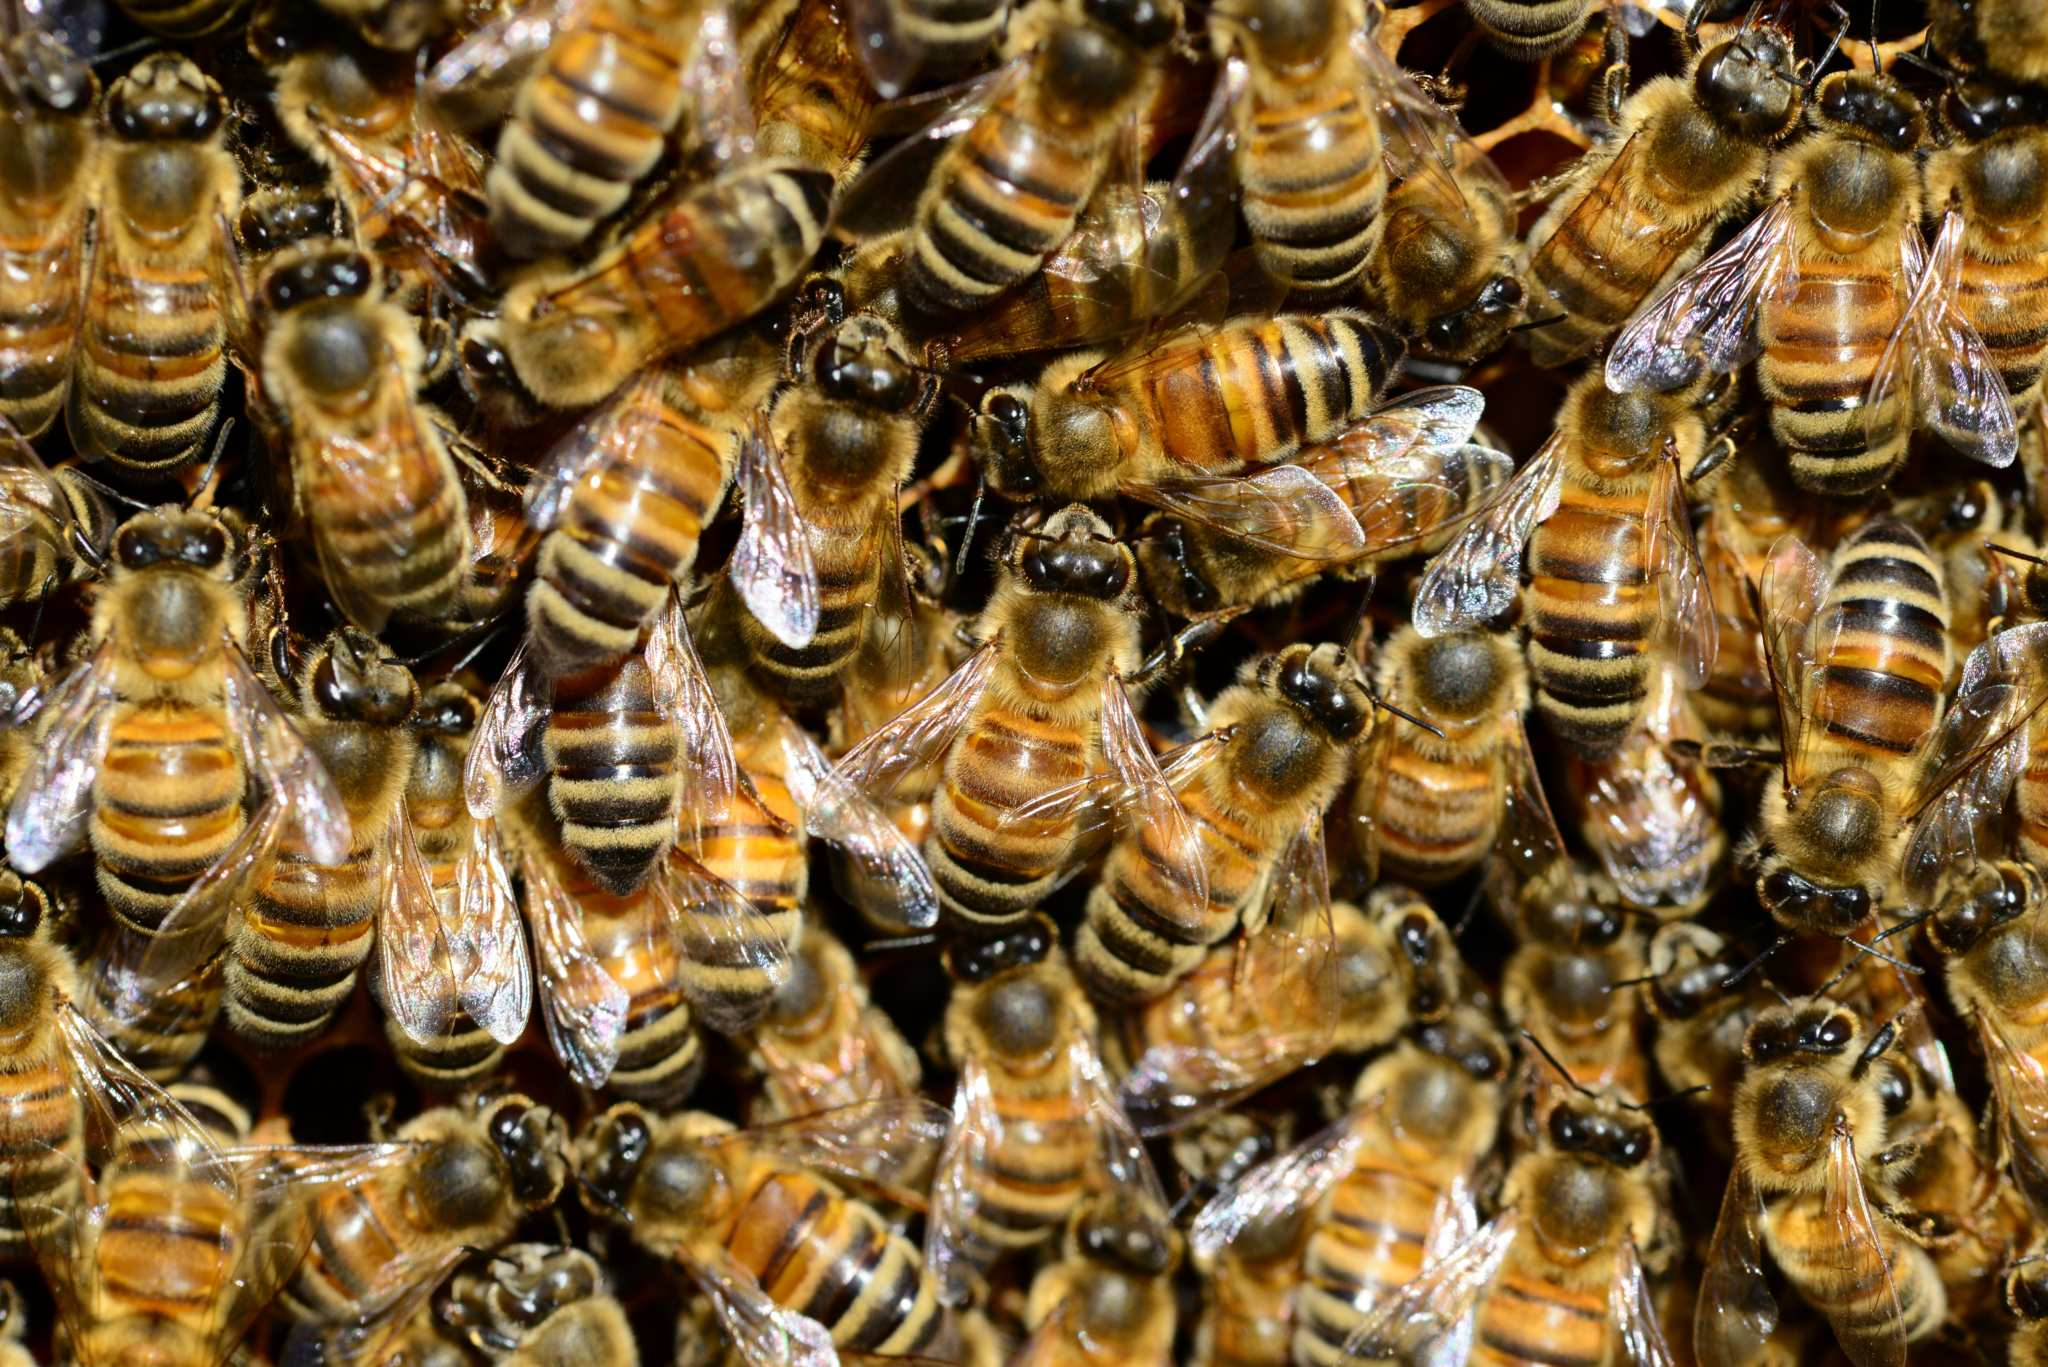 A closeup of a swarm of dozens of honeybees. Do bees love hemp? Preliminary research found 23 different bee species were attracted to Colorado hemp fields.